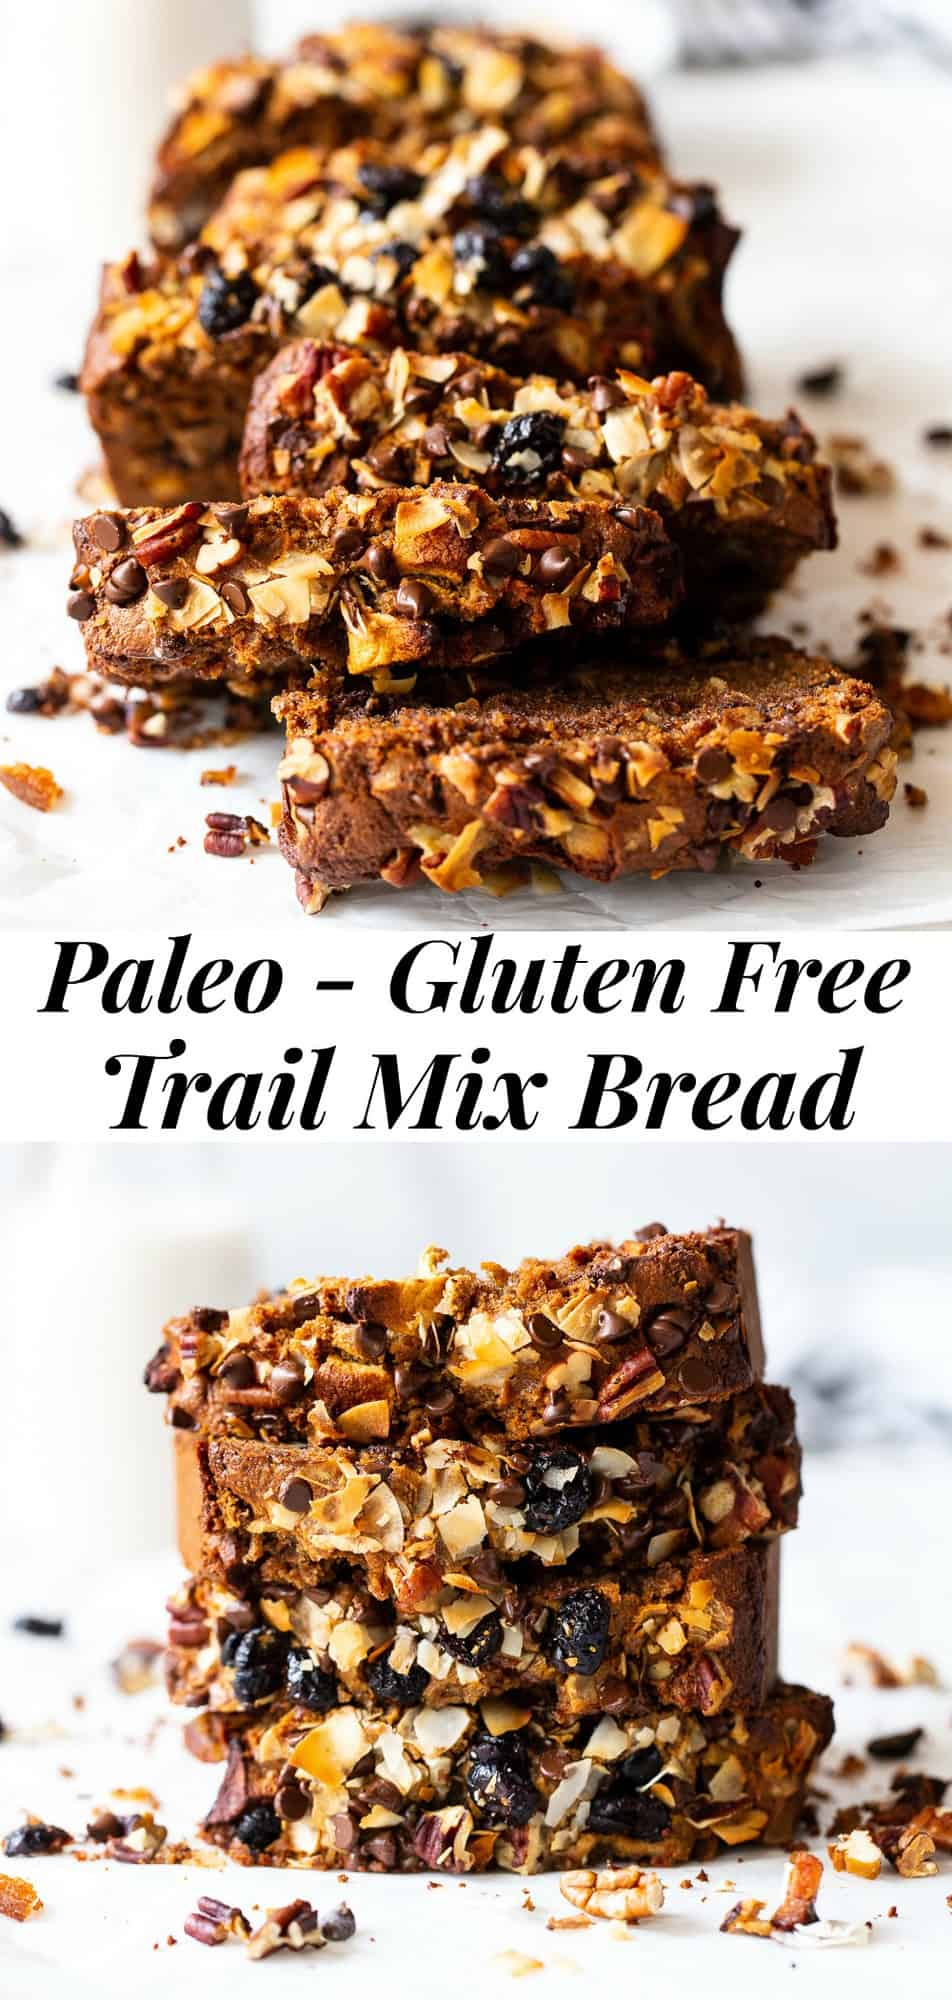 This grain free trail mix bread is a fun twist on a simple paleo quick bread! It's loaded with warm spices, dried fruit, nuts and coconut, and sweetened with maple syrup and coconut sugar. It's perfect to slather with nut butter for breakfast or for an anytime snack! Gluten free, refined sugar free, paleo, dairy free. #paleo #glutenfree #paleobaking #cleaneating